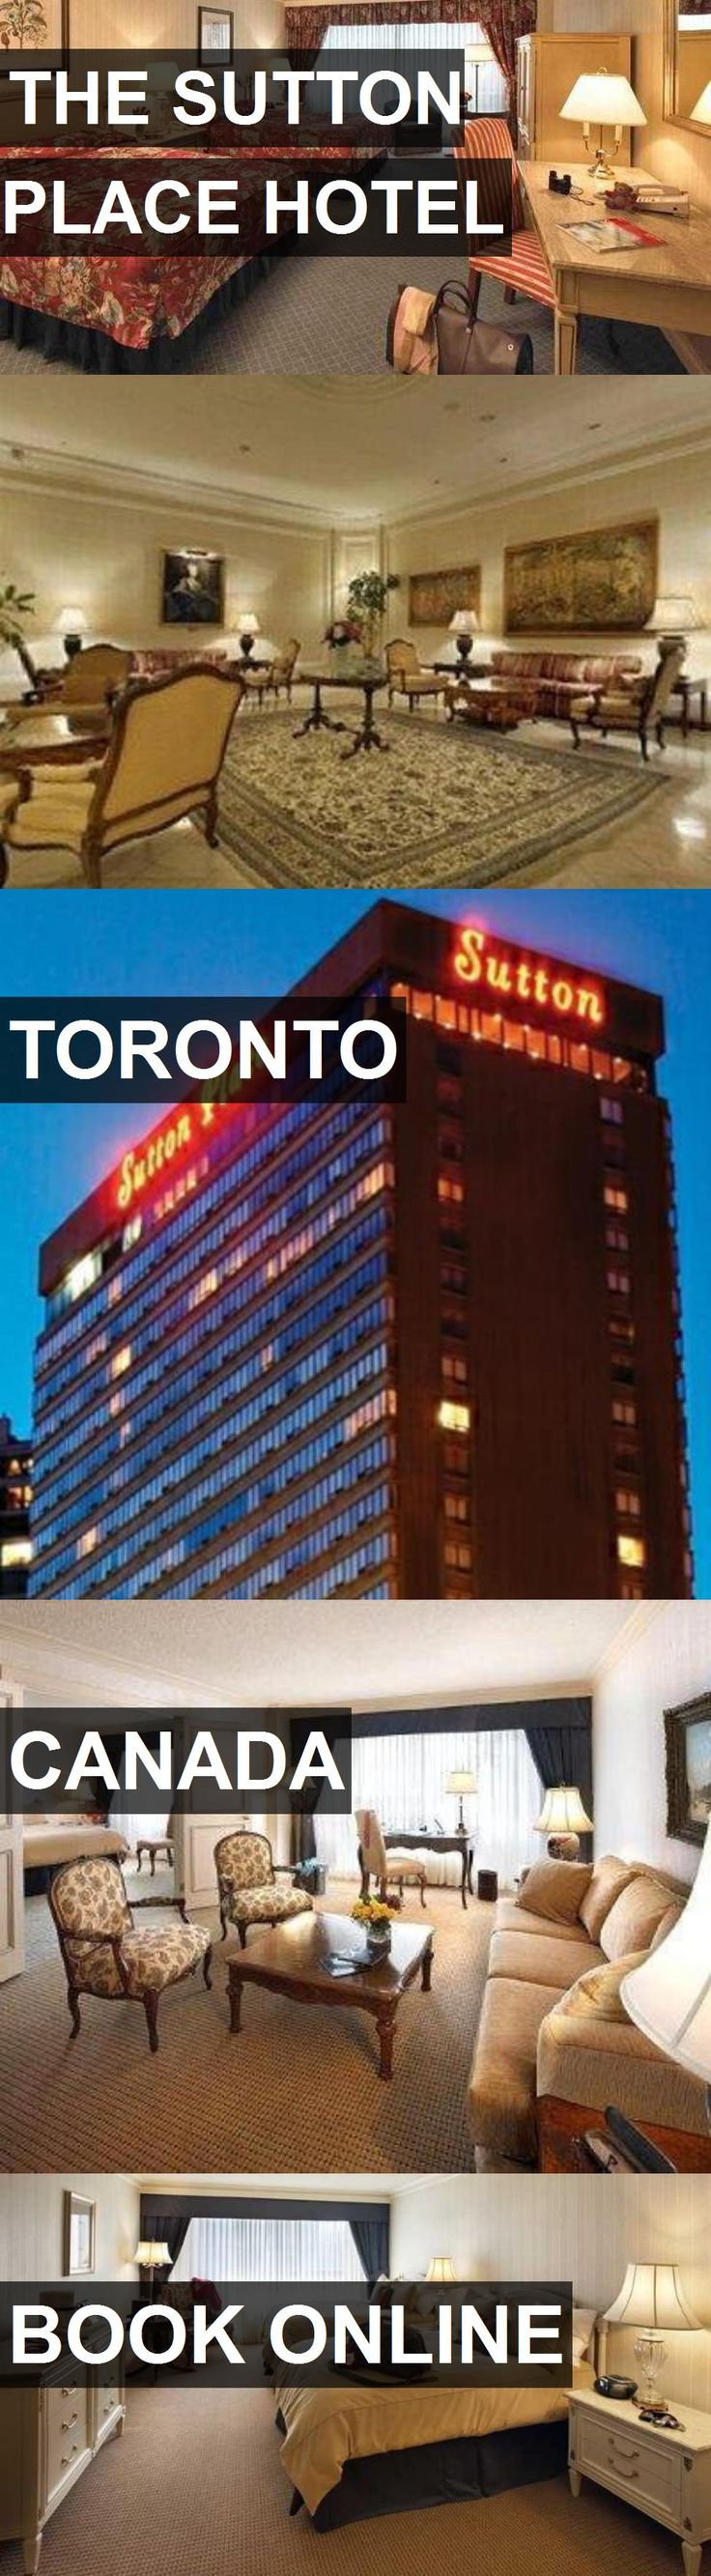 THE SUTTON PLACE HOTEL in Toronto, Canada. For more information, photos, reviews and best prices please follow the link. #Canada #Toronto #travel #vacation #hotel